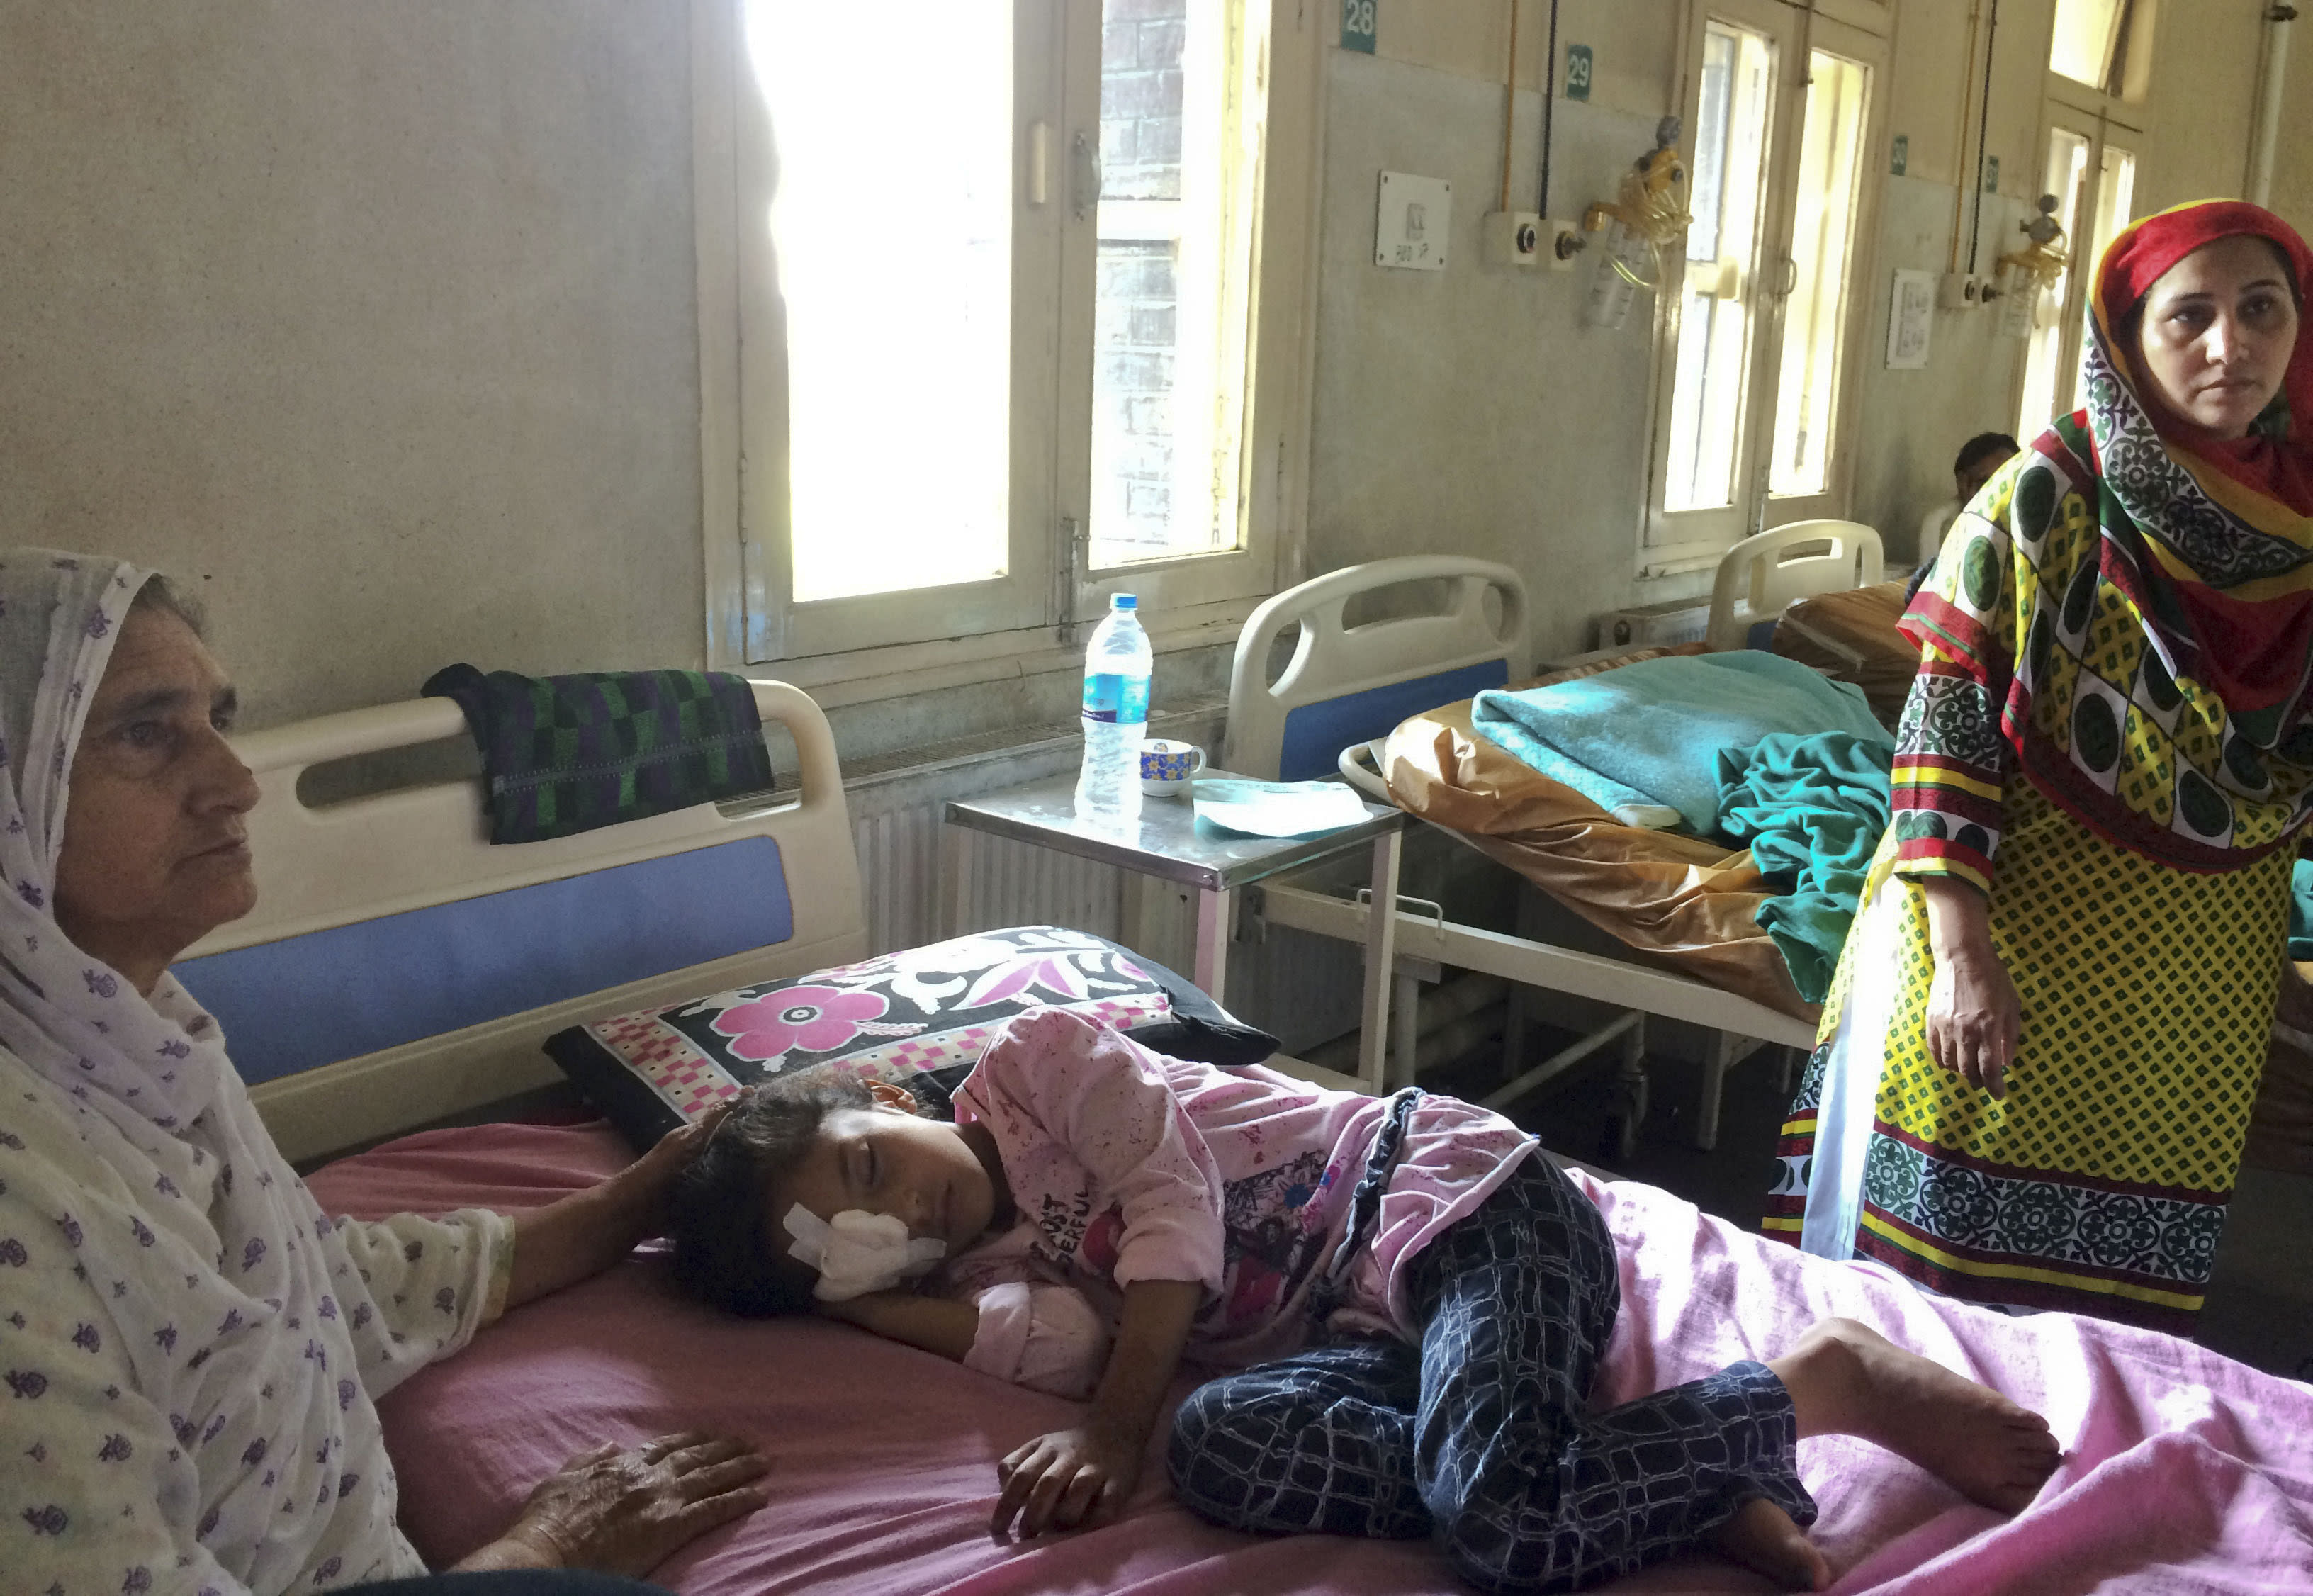 Grandmother Sara Ali, left, attends to six year old Kashmiri girl Muneefa Nazir, at a hospital after she was wounded by a marble shot from a sling used by Indian paramilitary soldiers in Srinagar Indian controlled Kashmir, Tuesday, Aug. 13, 2019. Indian Prime Minister Narendra Modi defended his government's controversial measure to strip the disputed Kashmir region of its statehood and special constitutional provisions in an Independence Day speech Thursday, as about 7 million Kashmiris stayed indoors for the 11th day of an unprecedented security lockdown and communications blackout. (AP Photo/ Aijaz Hussain)